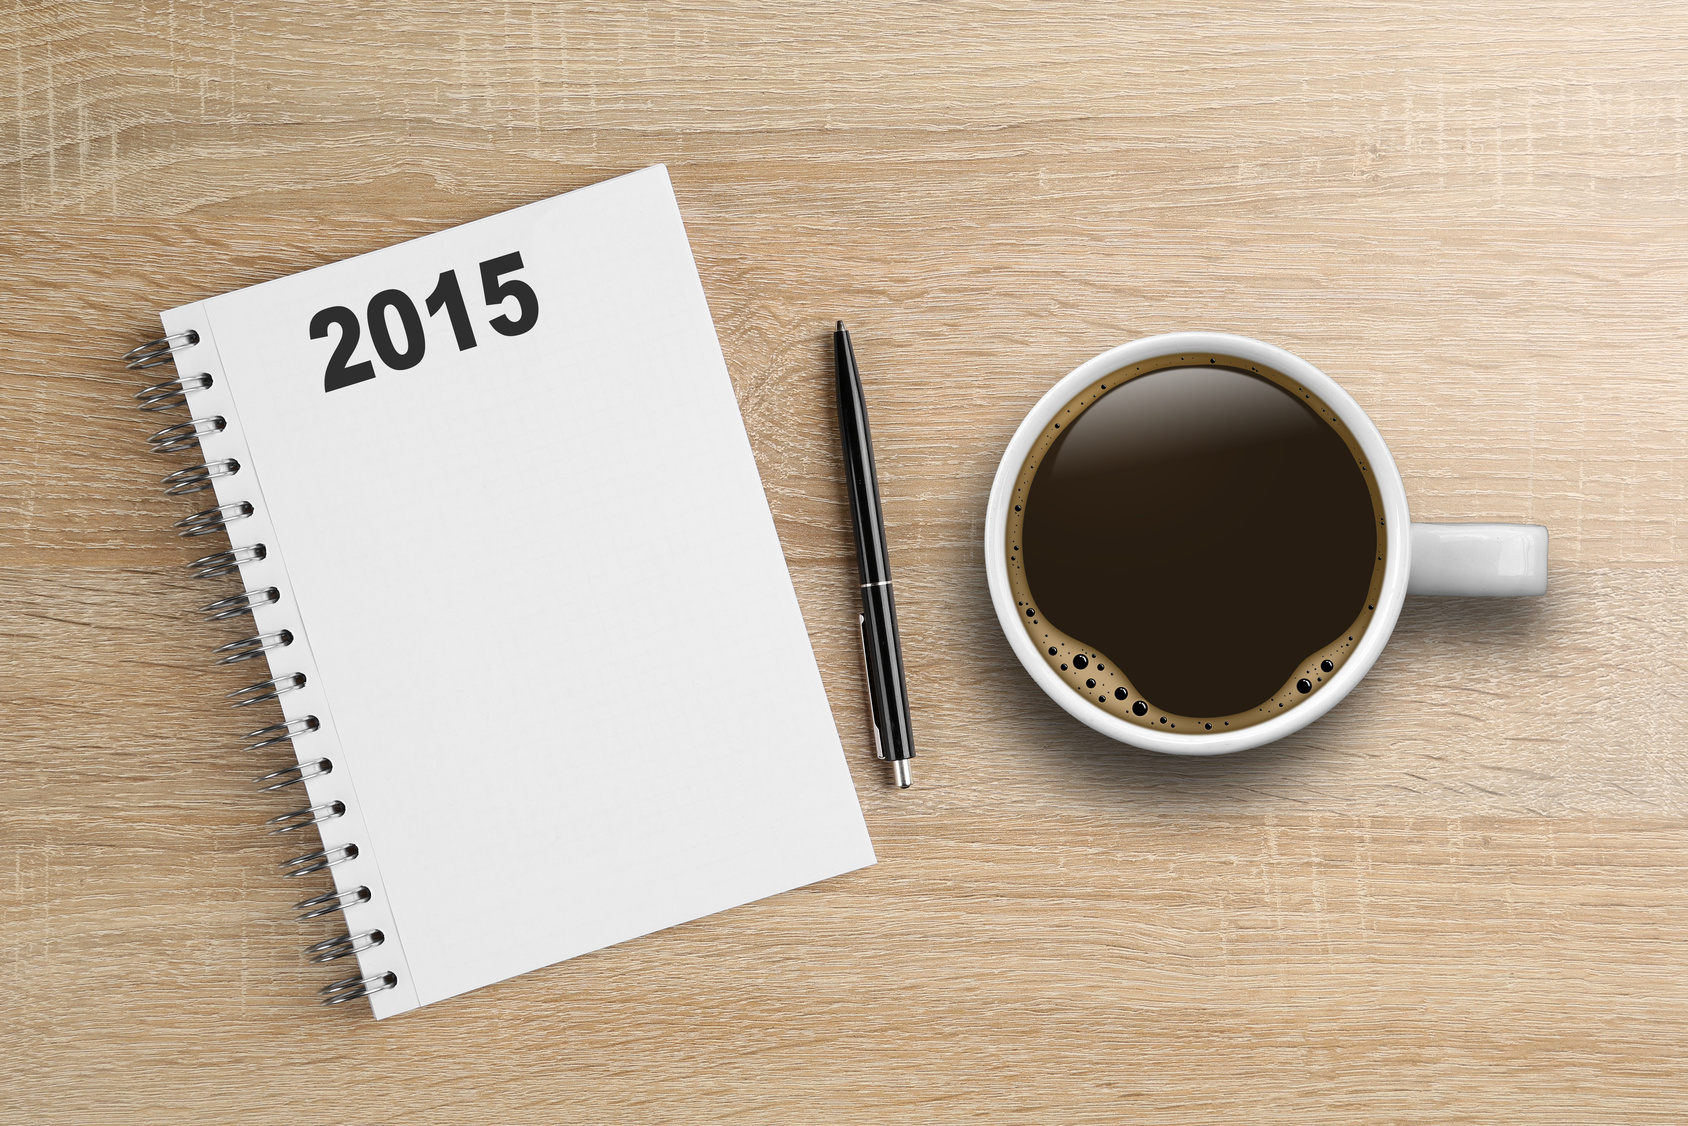 Career Goals for 2015: What's Next?